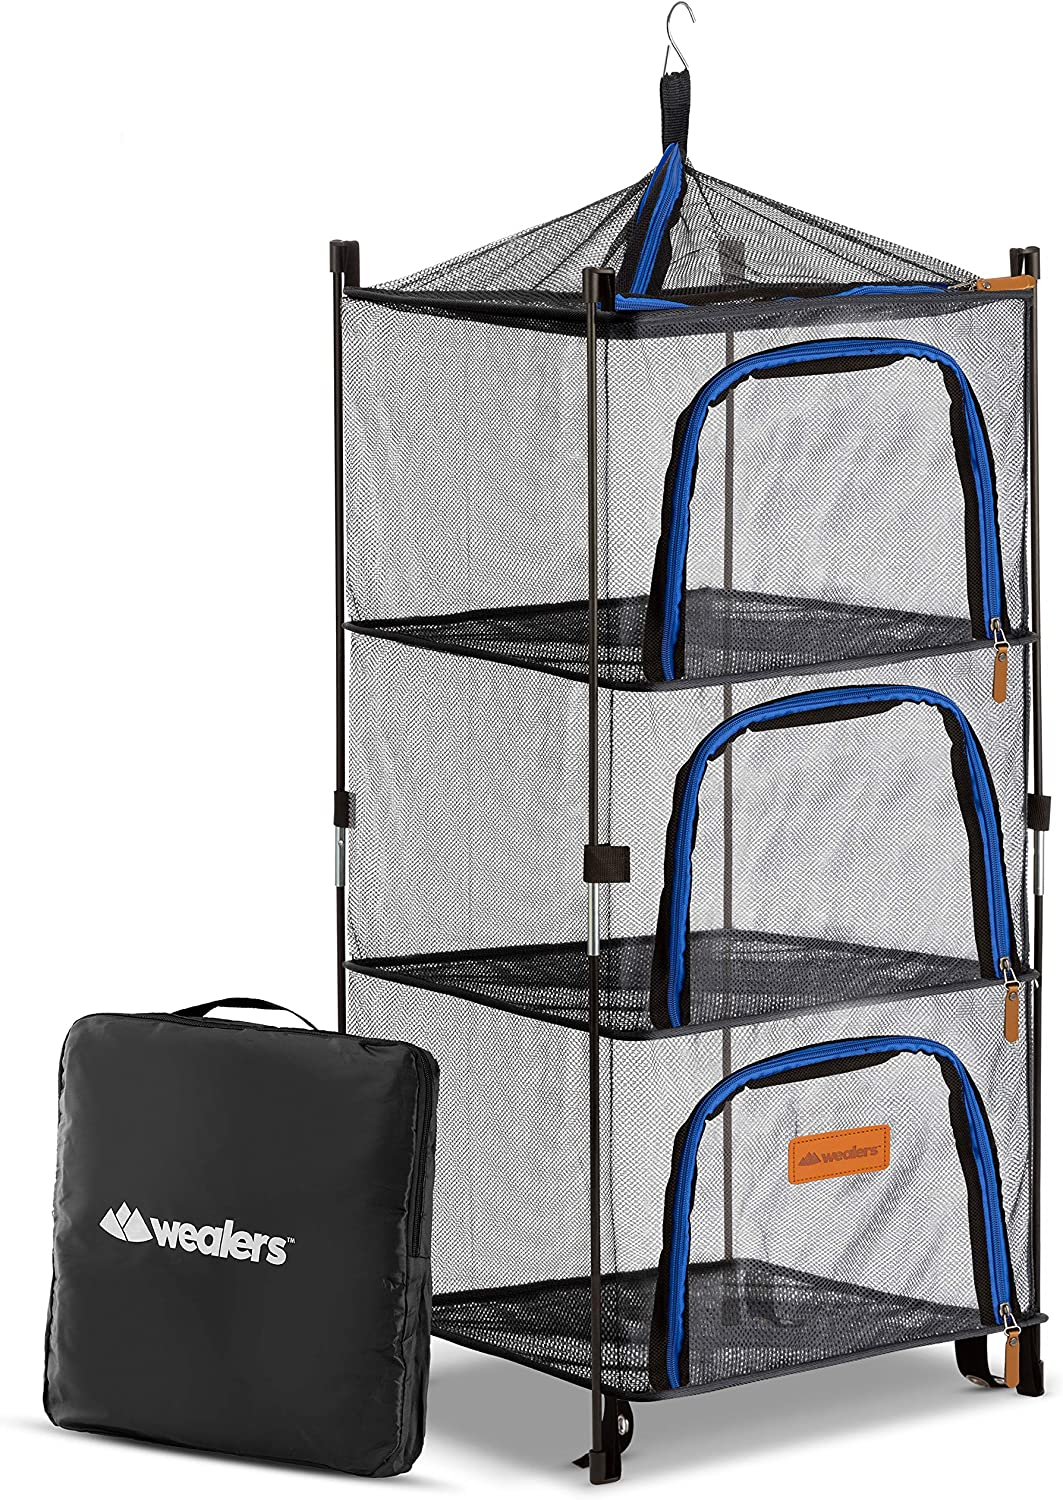 Wealers Outdoor Dry Net Storage and Food Screen 3-Tier Camping, Barbecue, Picnic Meal Protection Organizer | Faster Herb, Clothes, Dish Drying | Foldable (New Version)